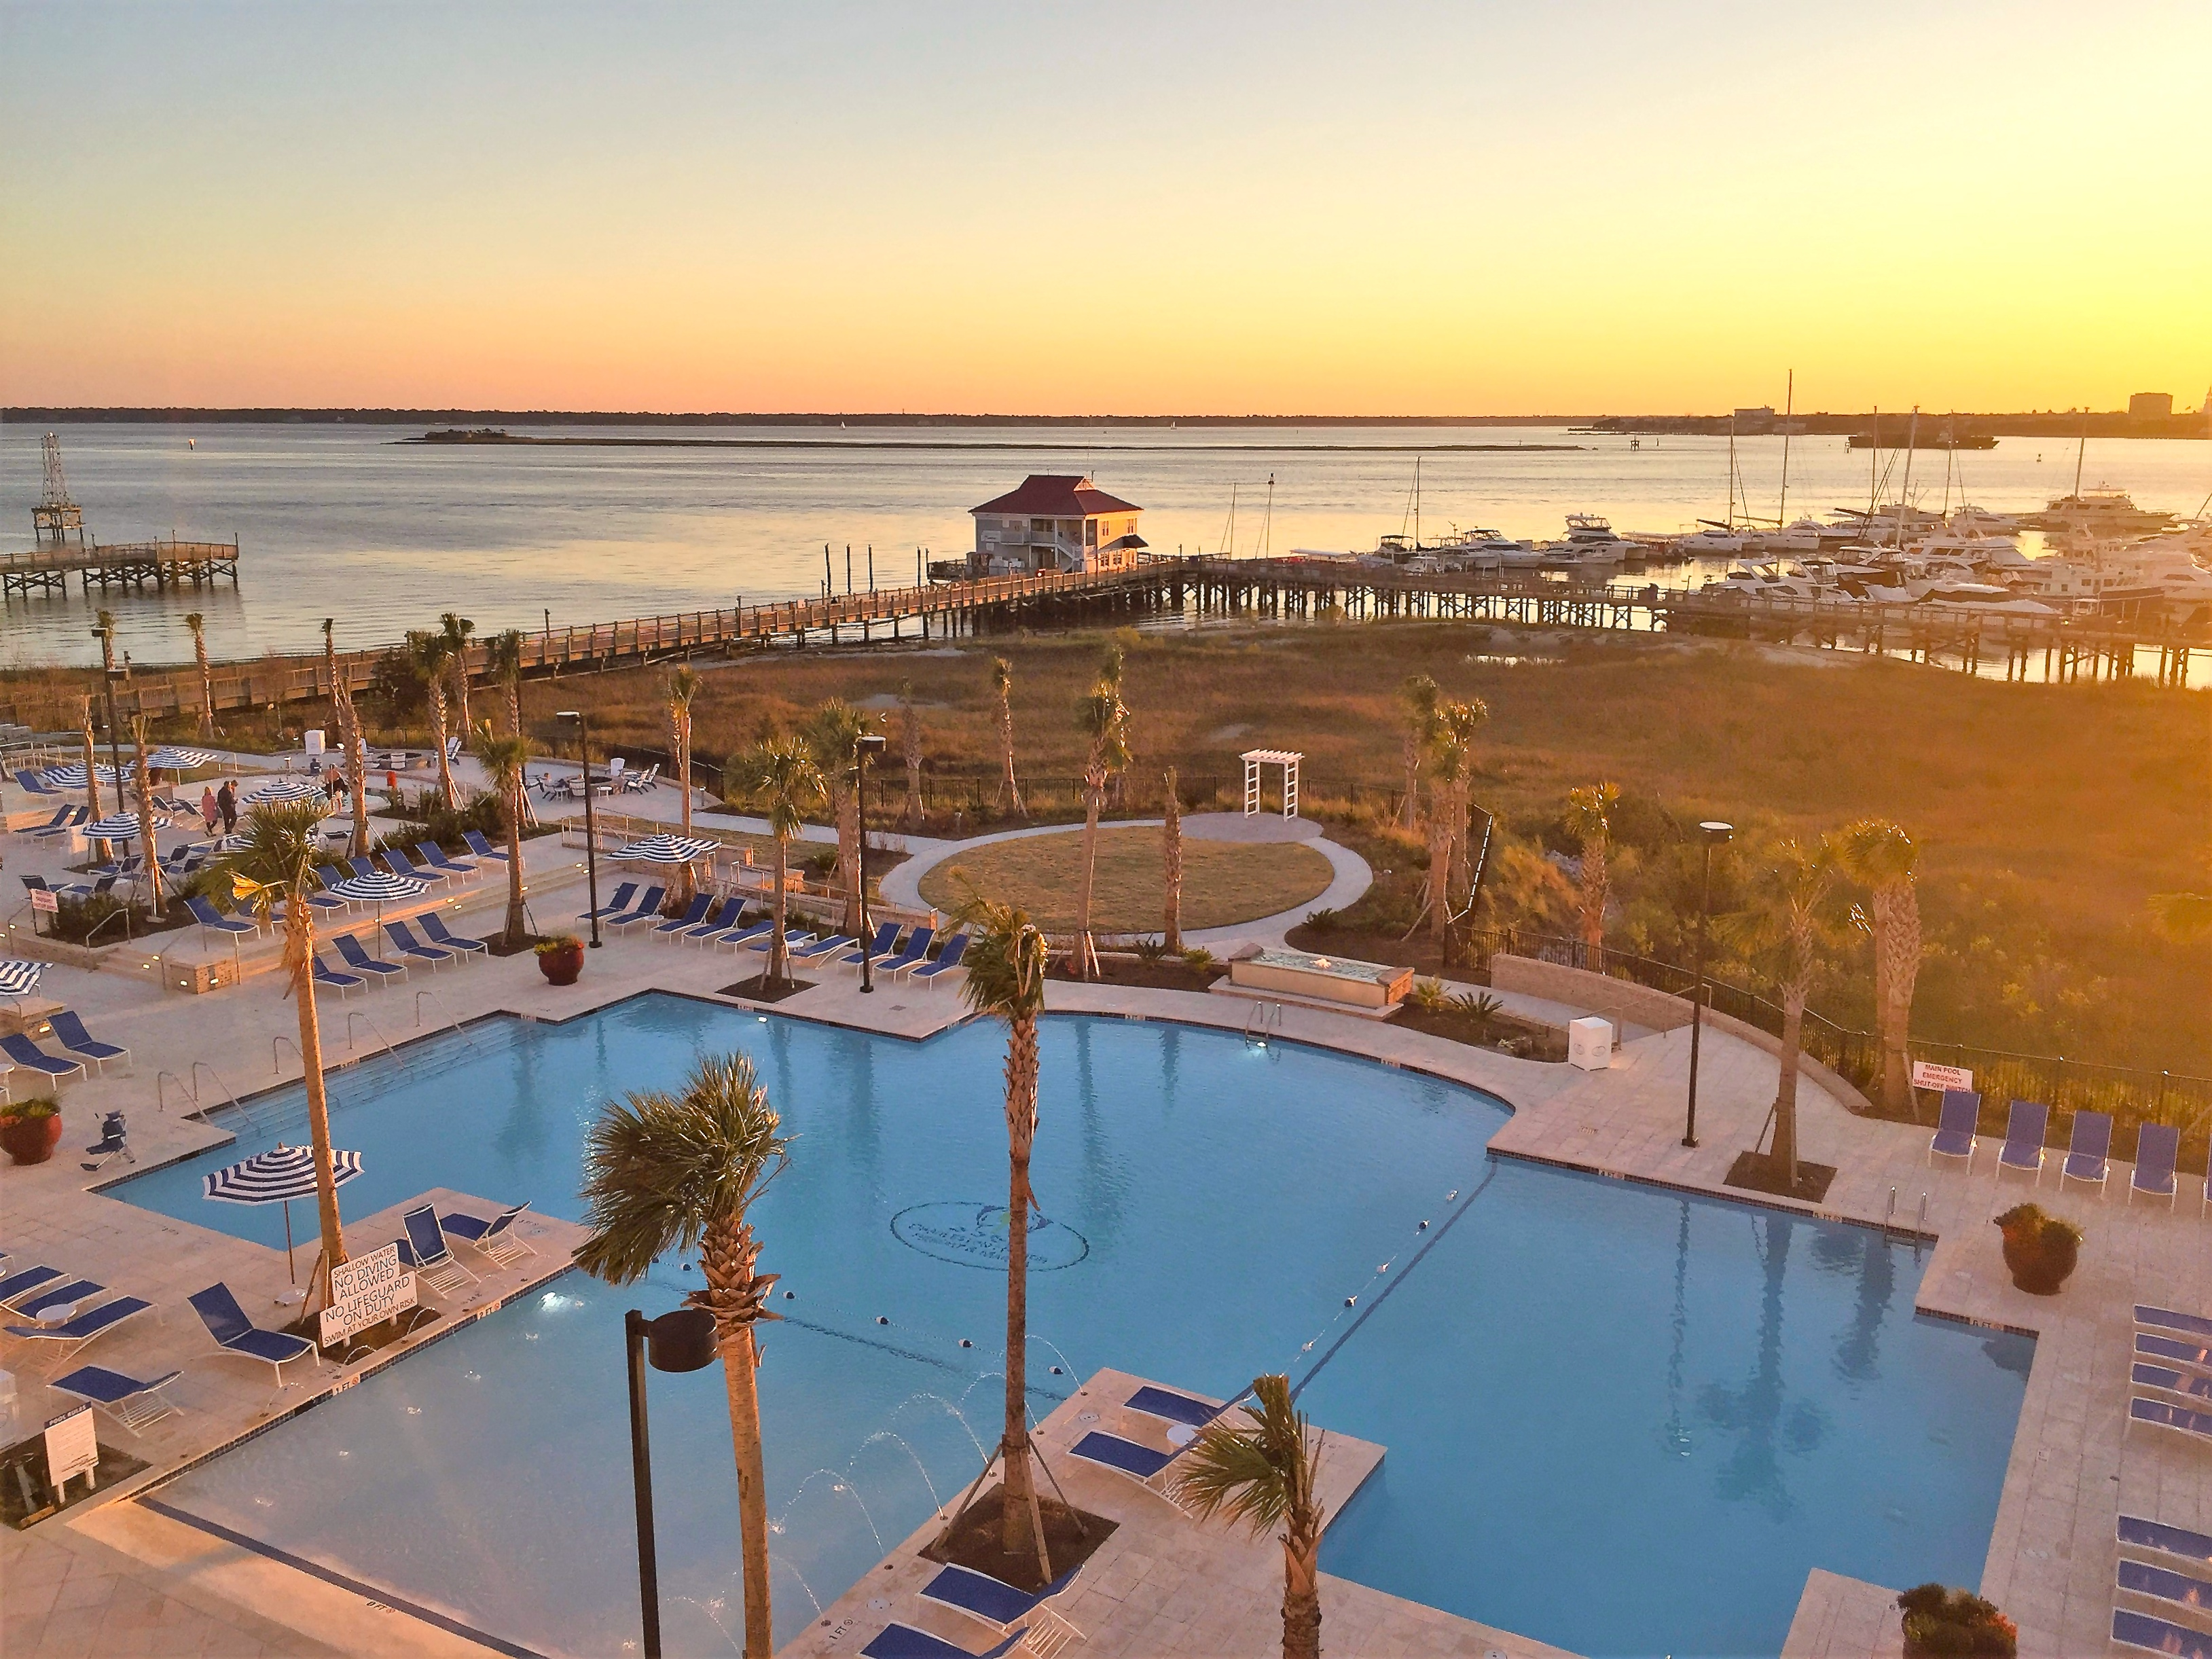 The Beach Club at Charleston Harbor